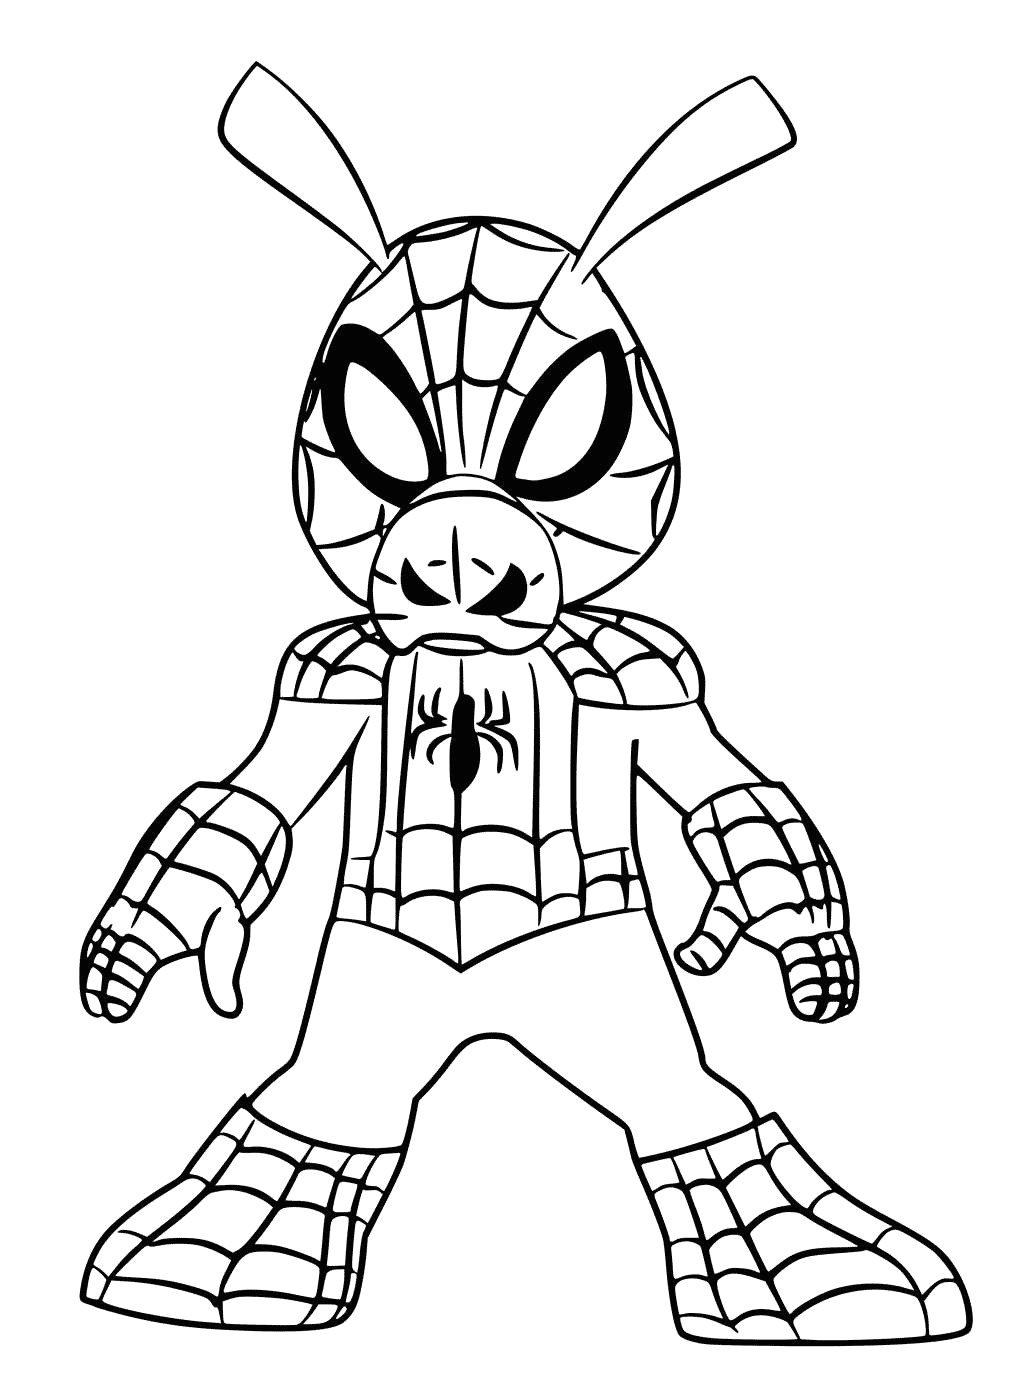 Spider Man Into the Spider Verse Coloring Pages Printable Spider Man Into the Spider Verse Coloring Pages Spider Ham